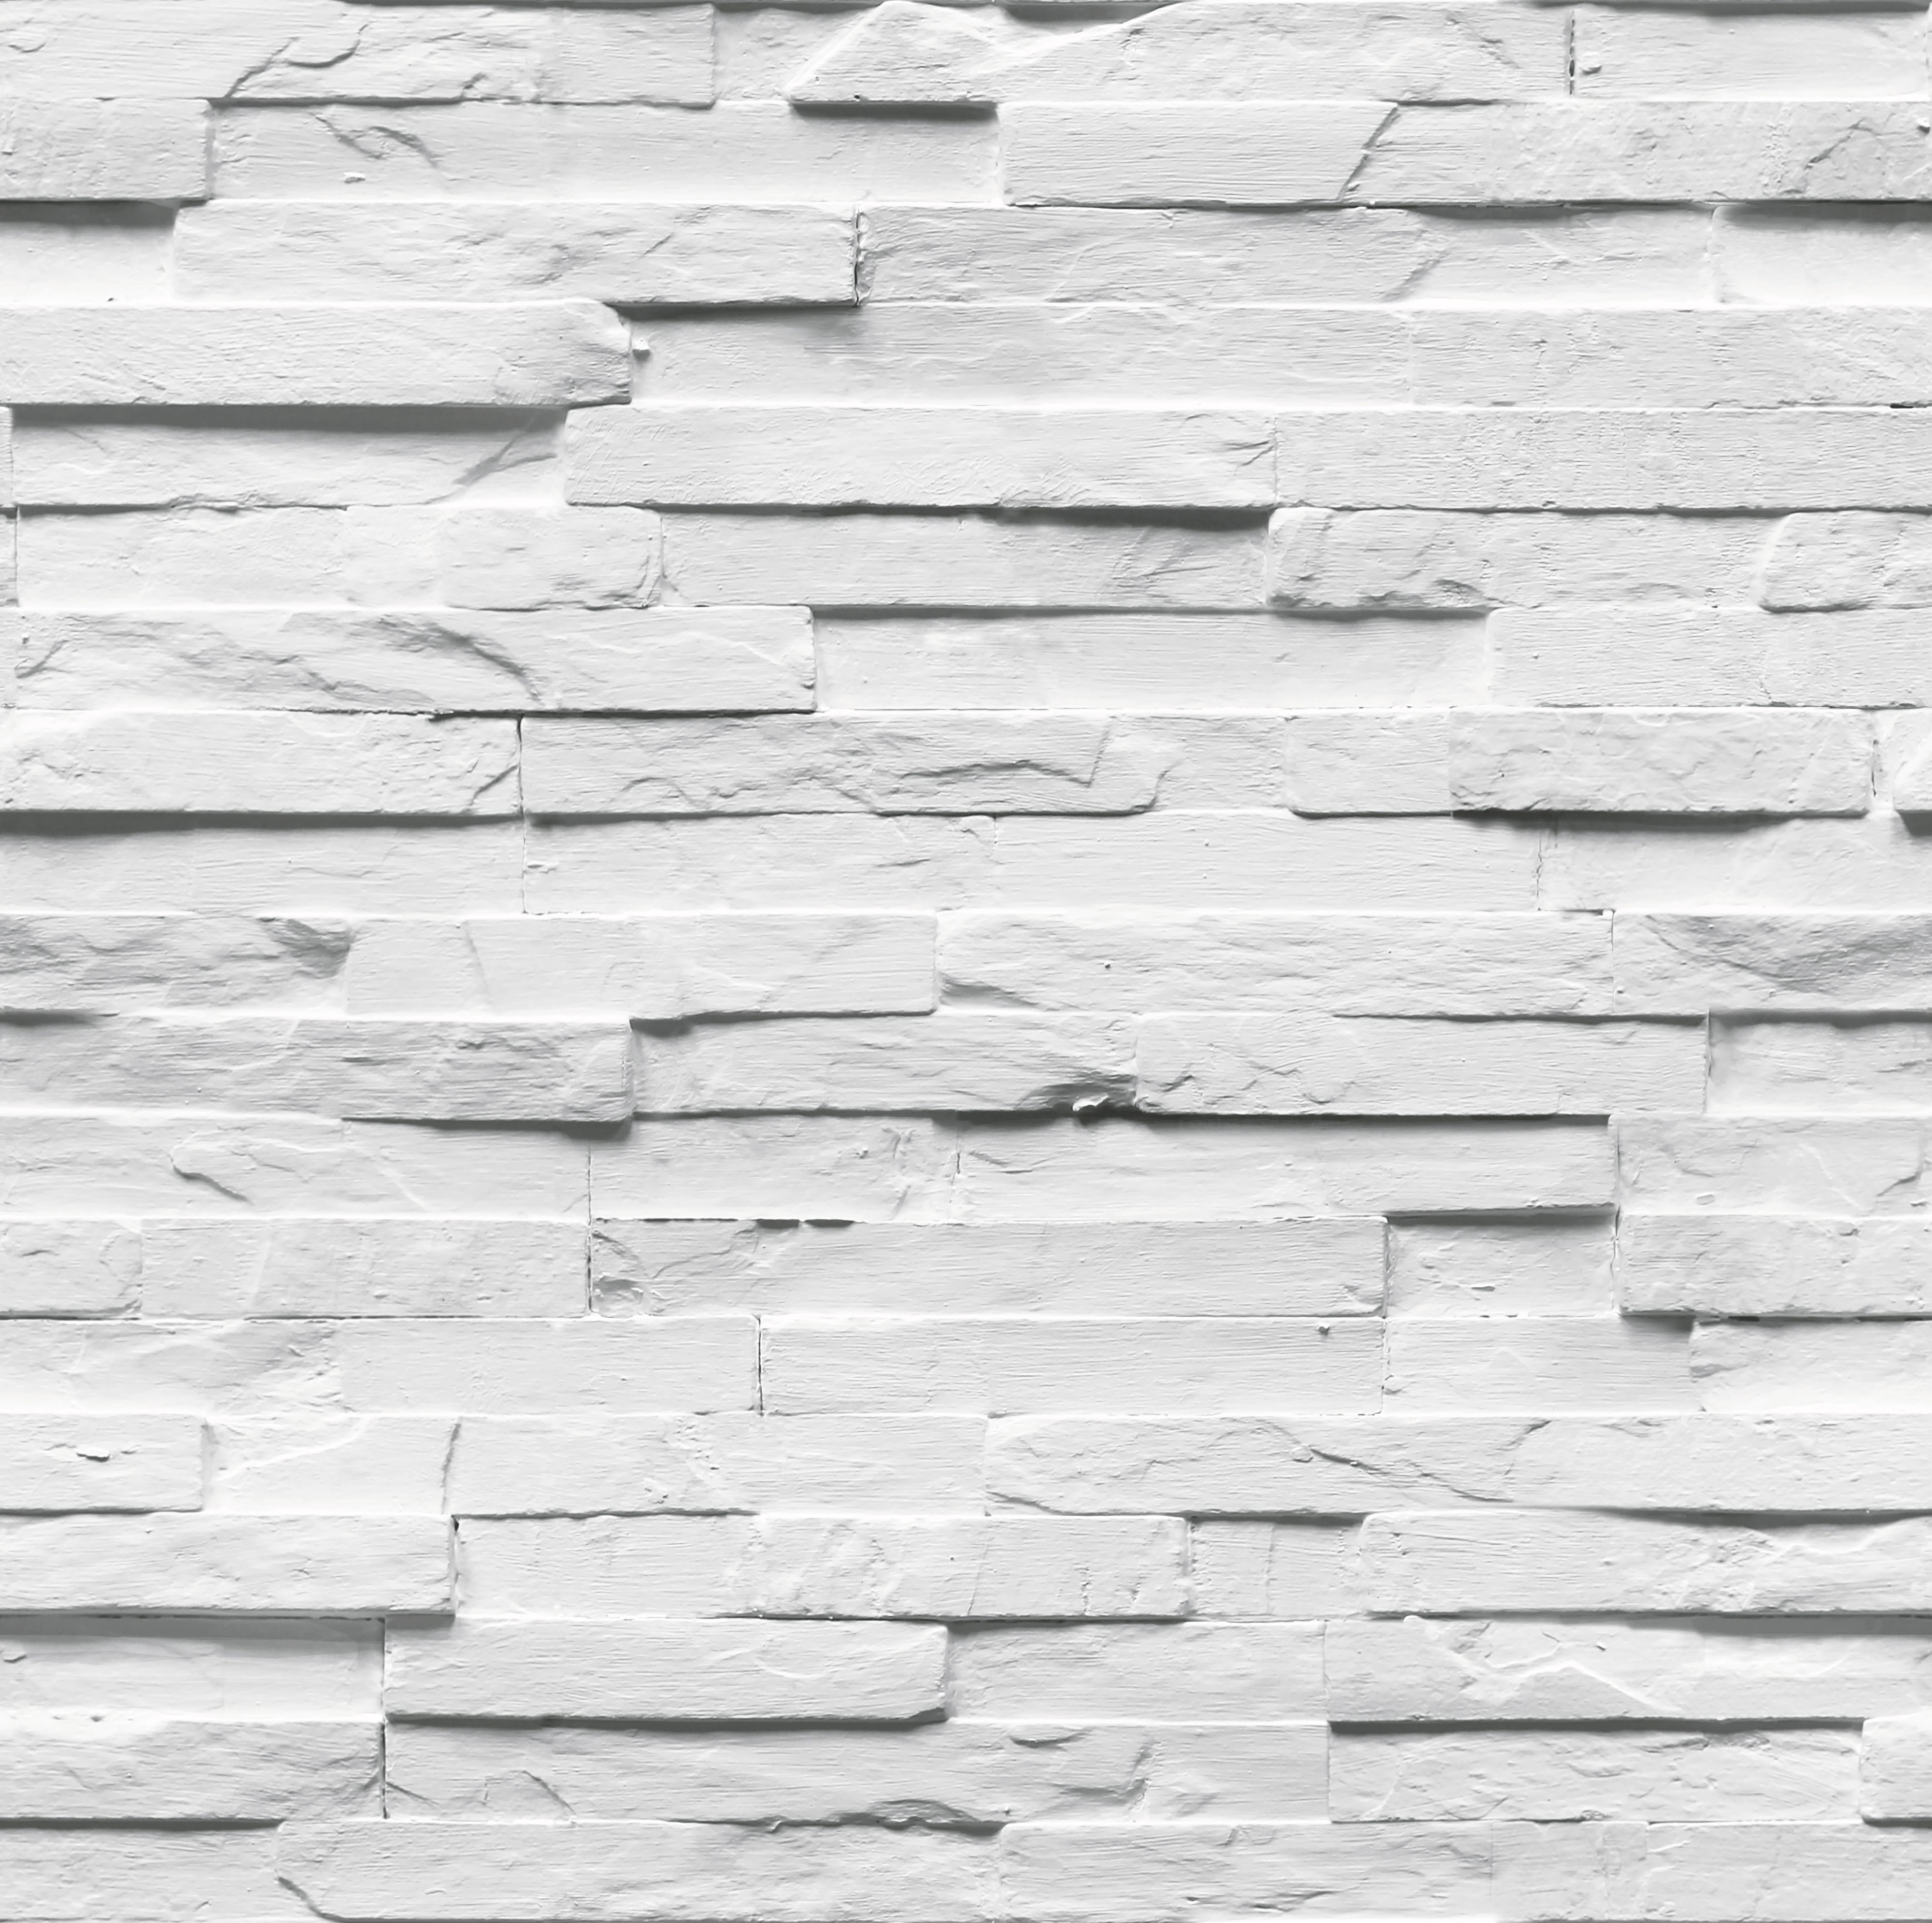 Fine Décor Ledgestone White Stone Wallpaper Departments Diy At B Q Stone Wallpaper Faux Stone Wallpaper Brick Wallpaper